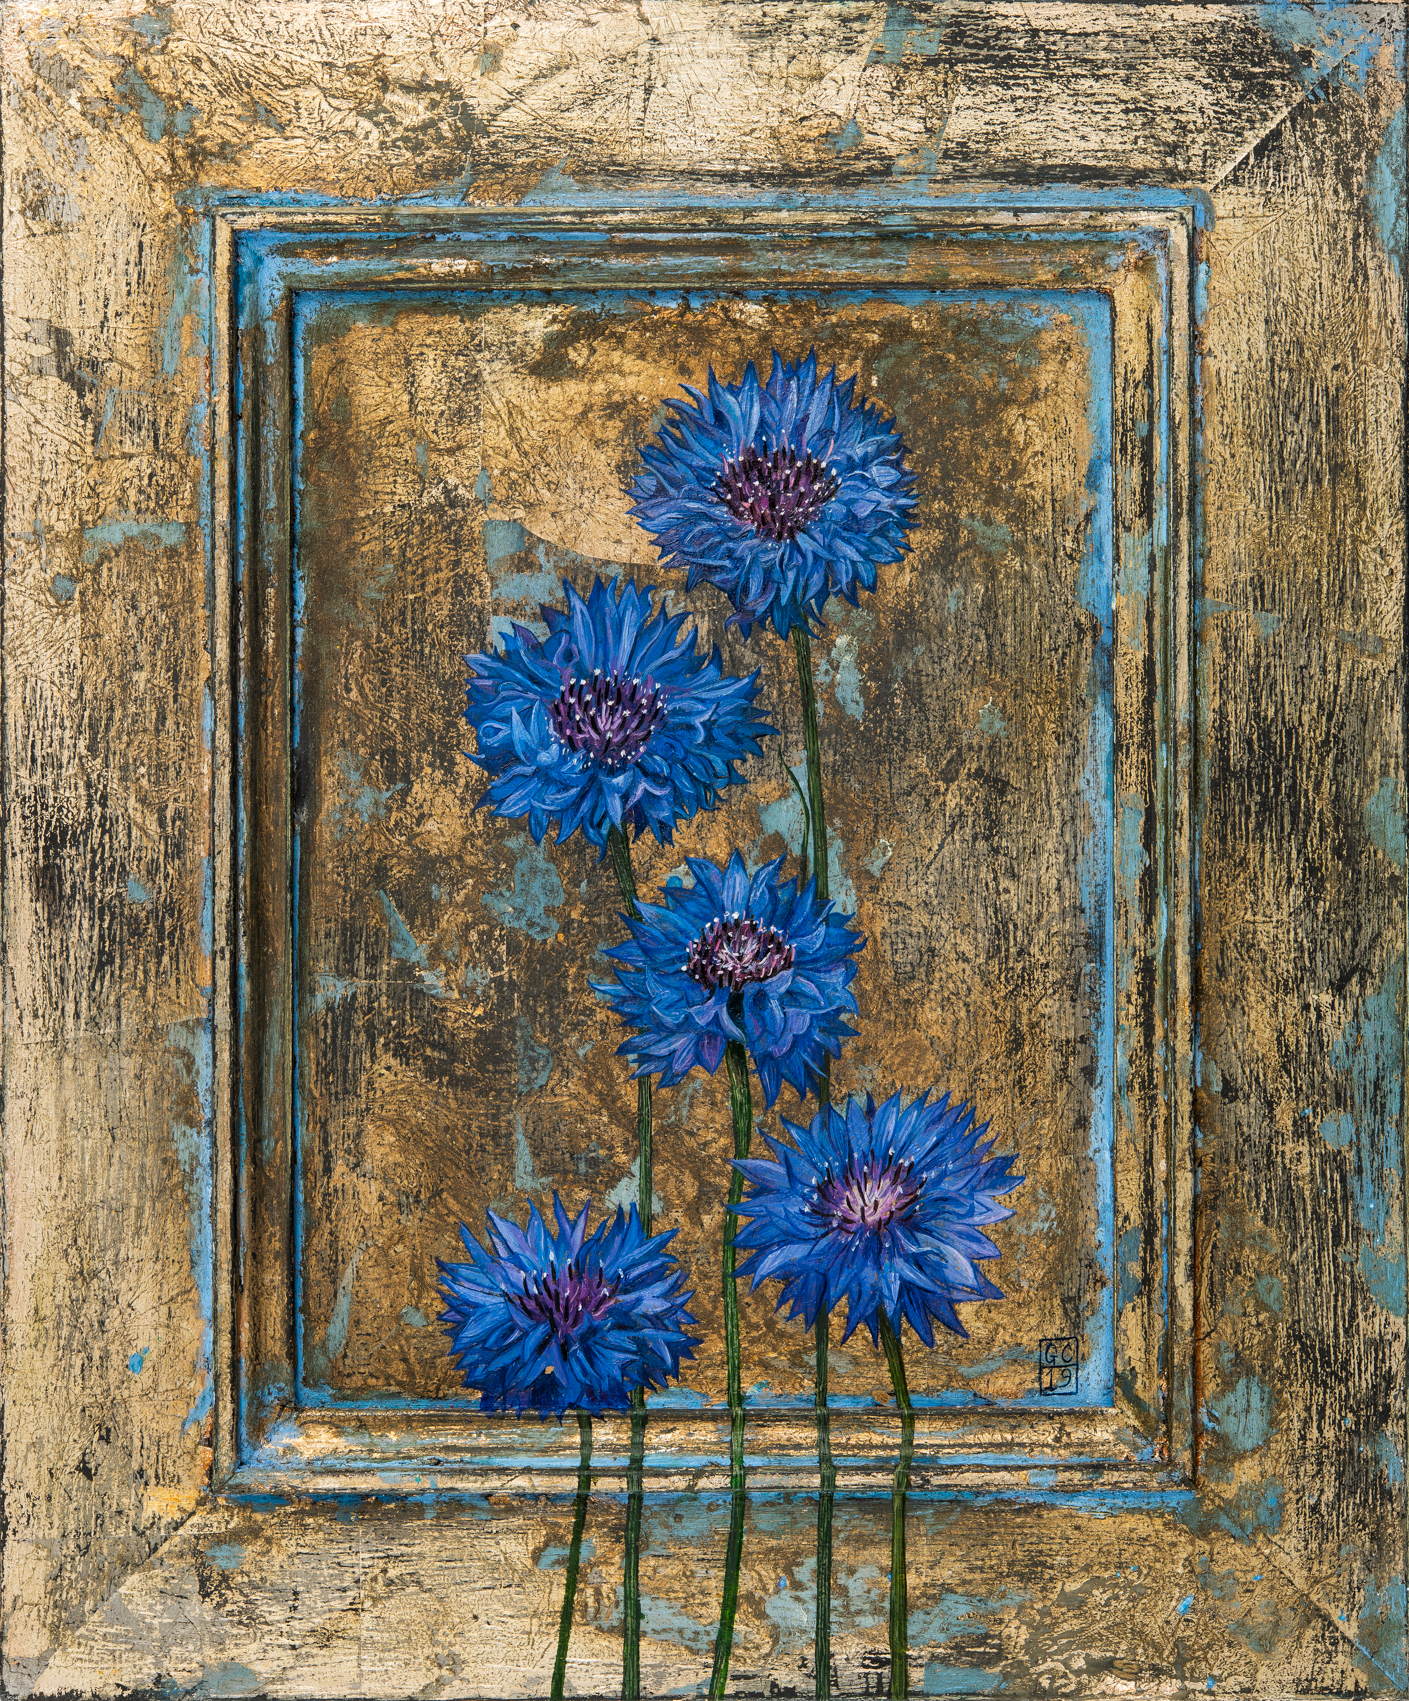 'Cornflowers', Oil and Silver Leaf on Panel, 28 x23 cm